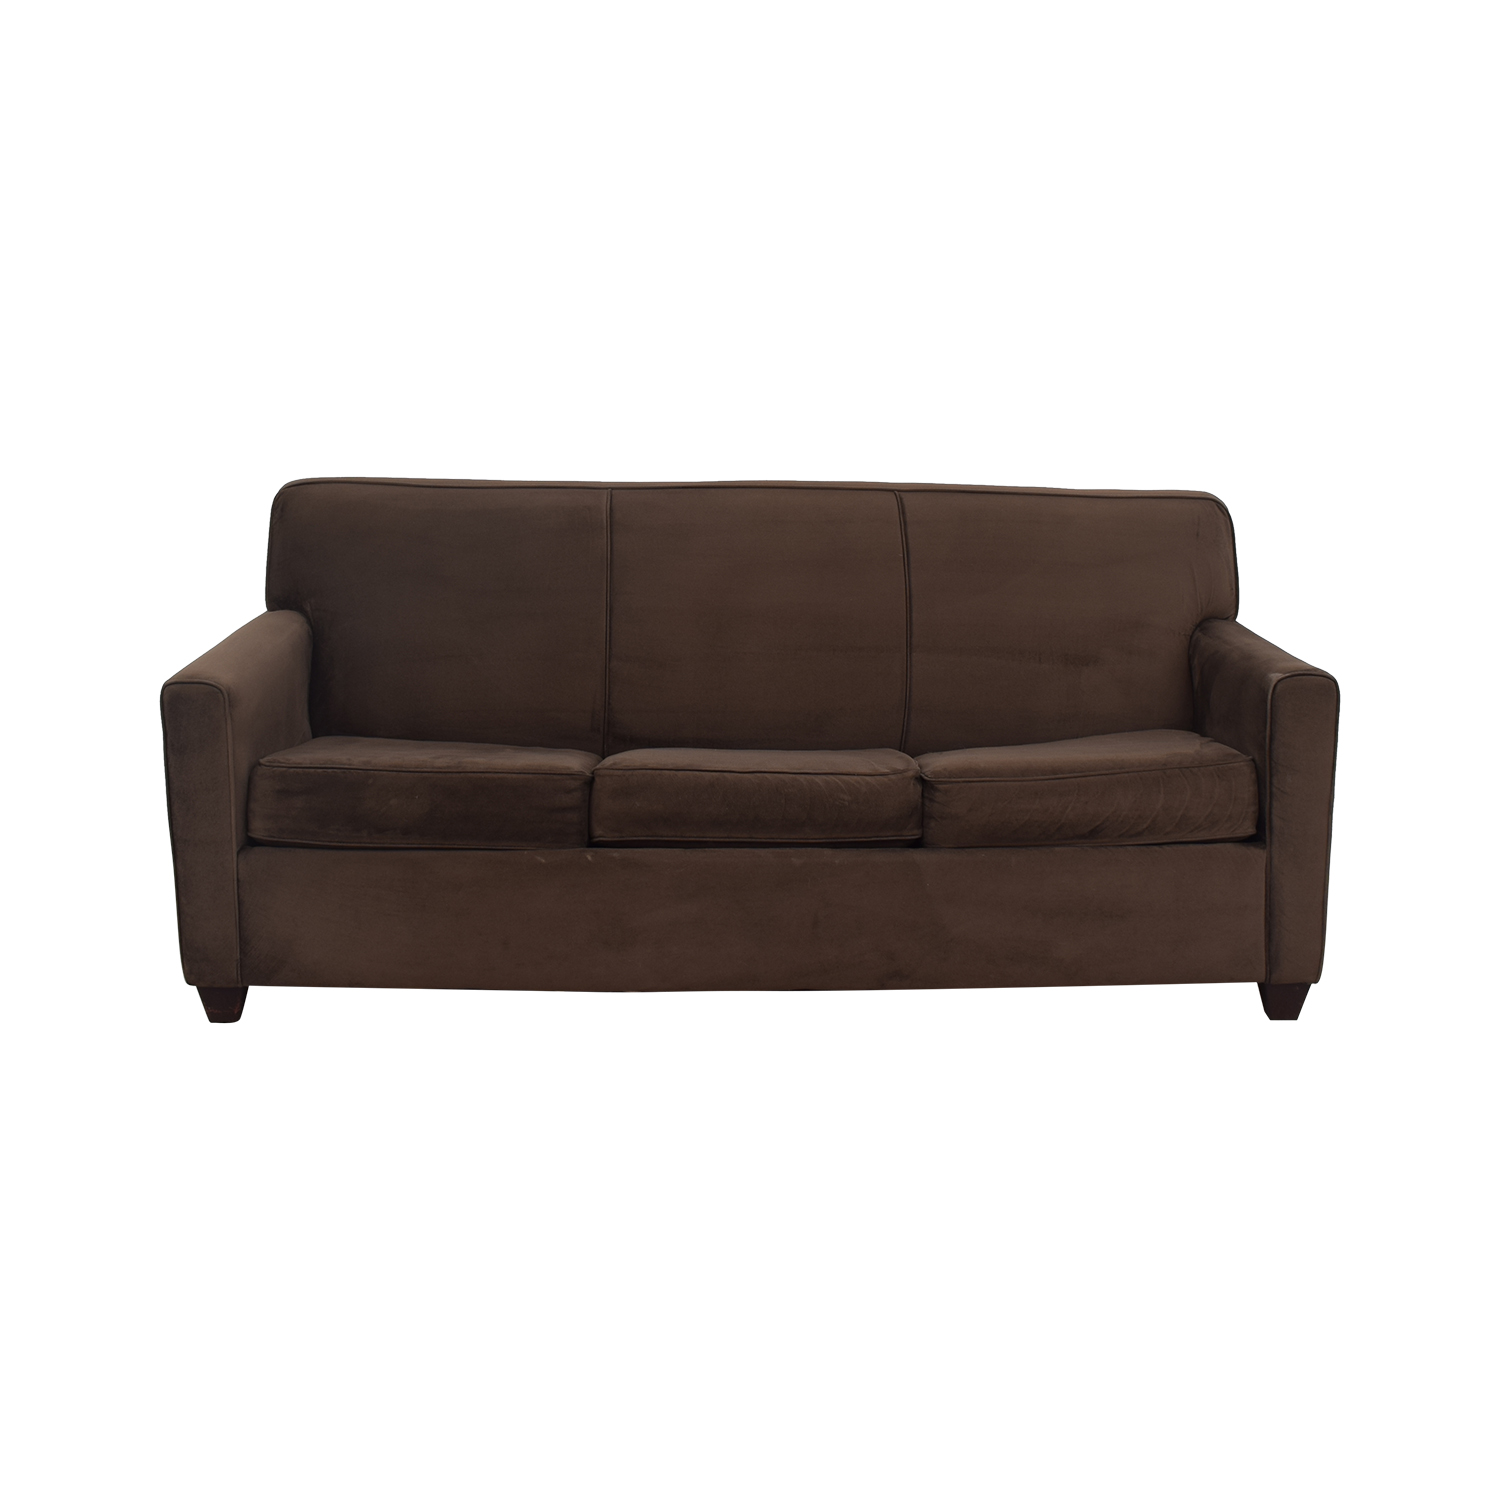 buy Raymour & Flanigan Queen Sleeper Sofa Raymour & Flanigan